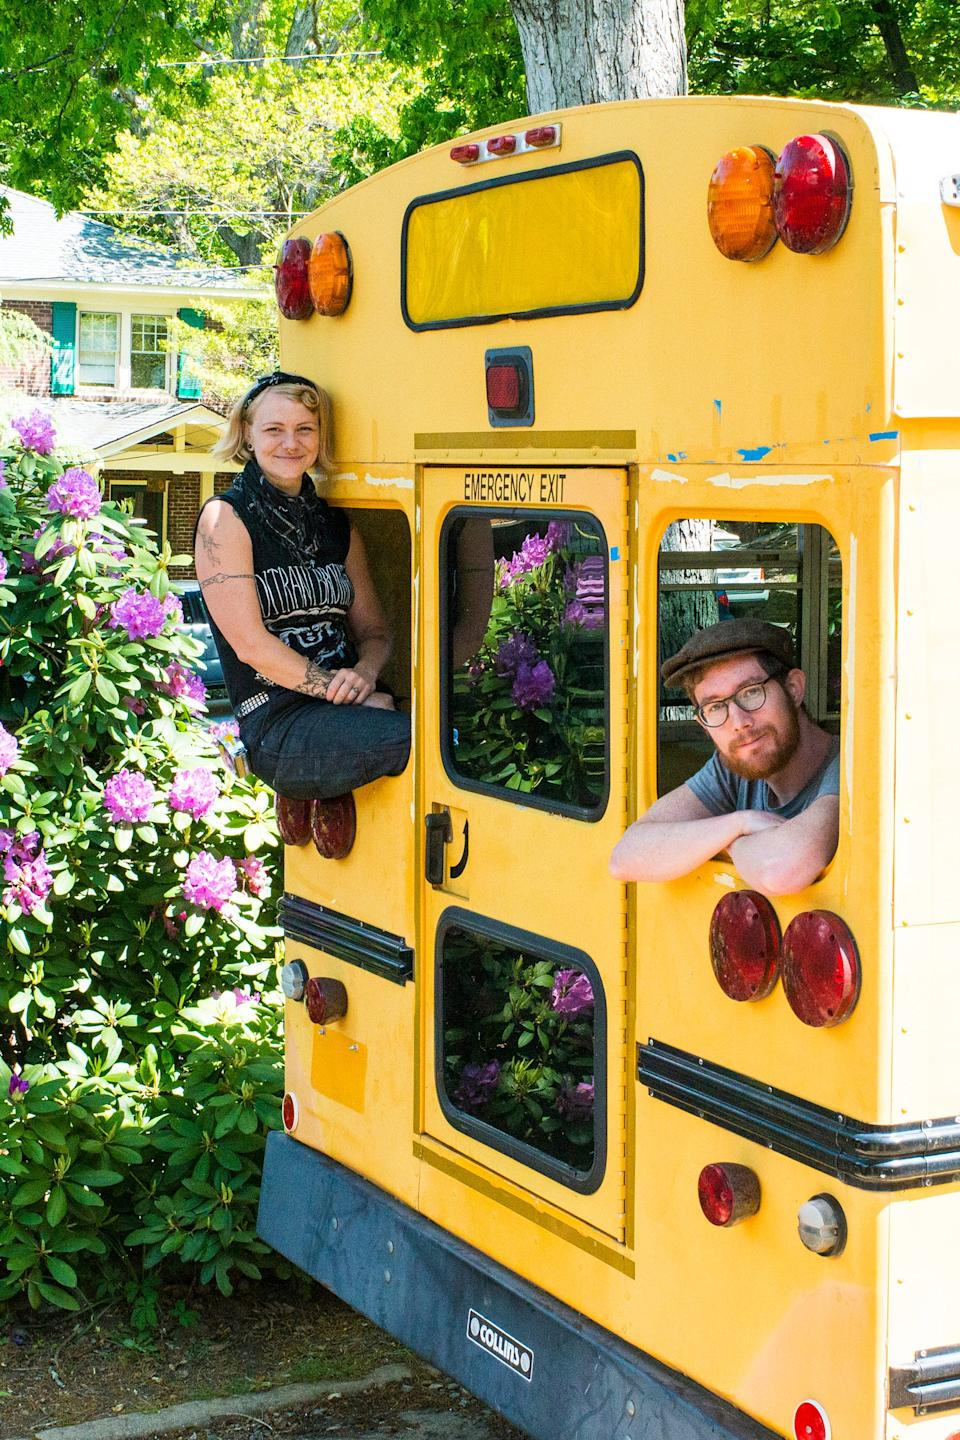 Sparrow Kettner, 36, and her husband Keith Smith, 29, converted an old, yellow school bus into their future home. They are traveling musicians in a band called The Resonant Rogues.